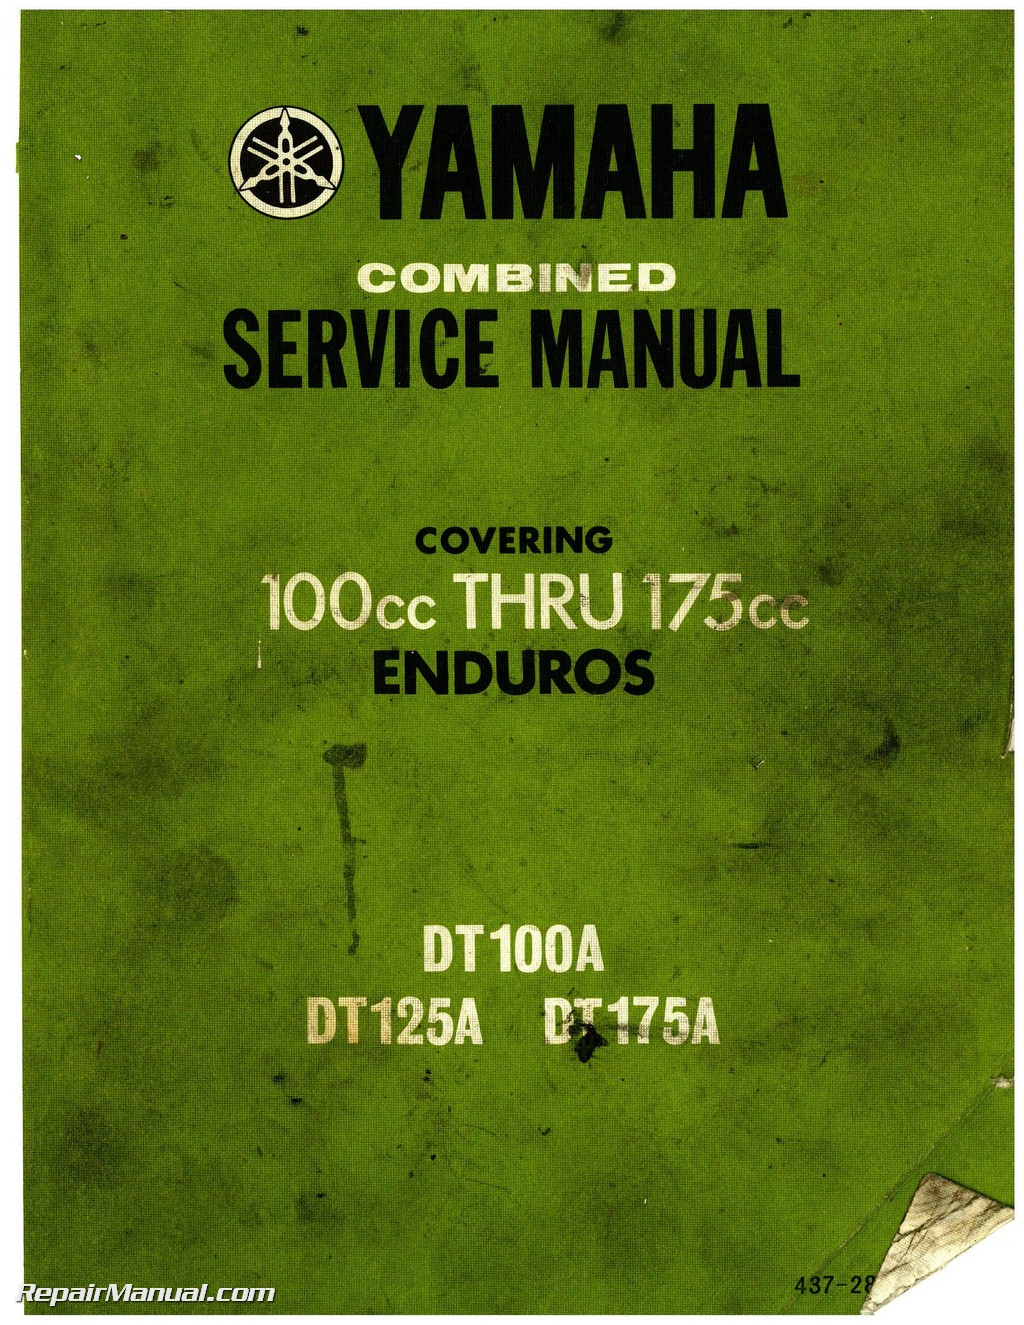 Yamaha Dt 100 Wiring Specifications Schematics Diagrams Rd200 Diagram Free Download Schematic 1974 Dt100 Dt125 Dt175 Enduro Motorcycle Service Manual Rh Repairmanual Com Repair 1980 125